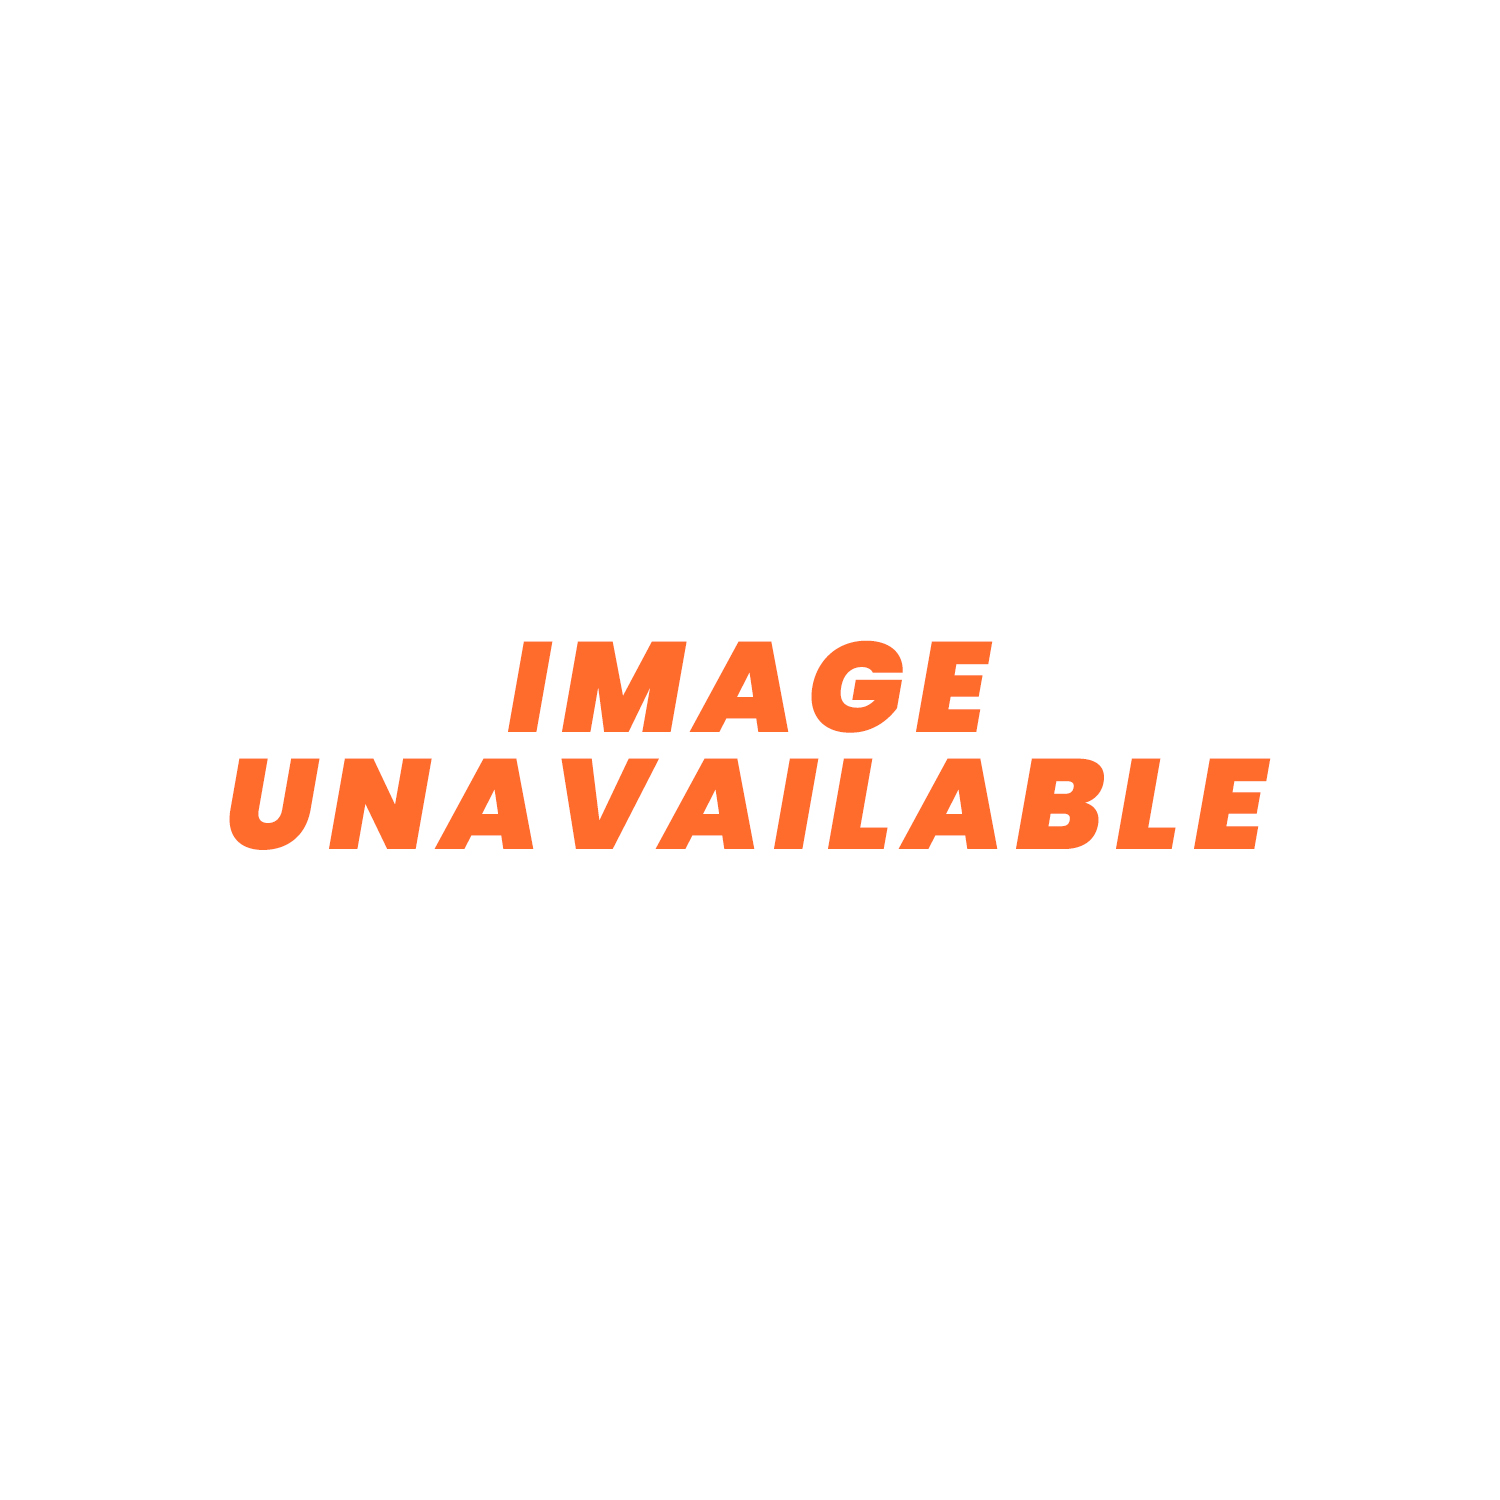 SK Extension Cable 230v 1.5m - 1454677